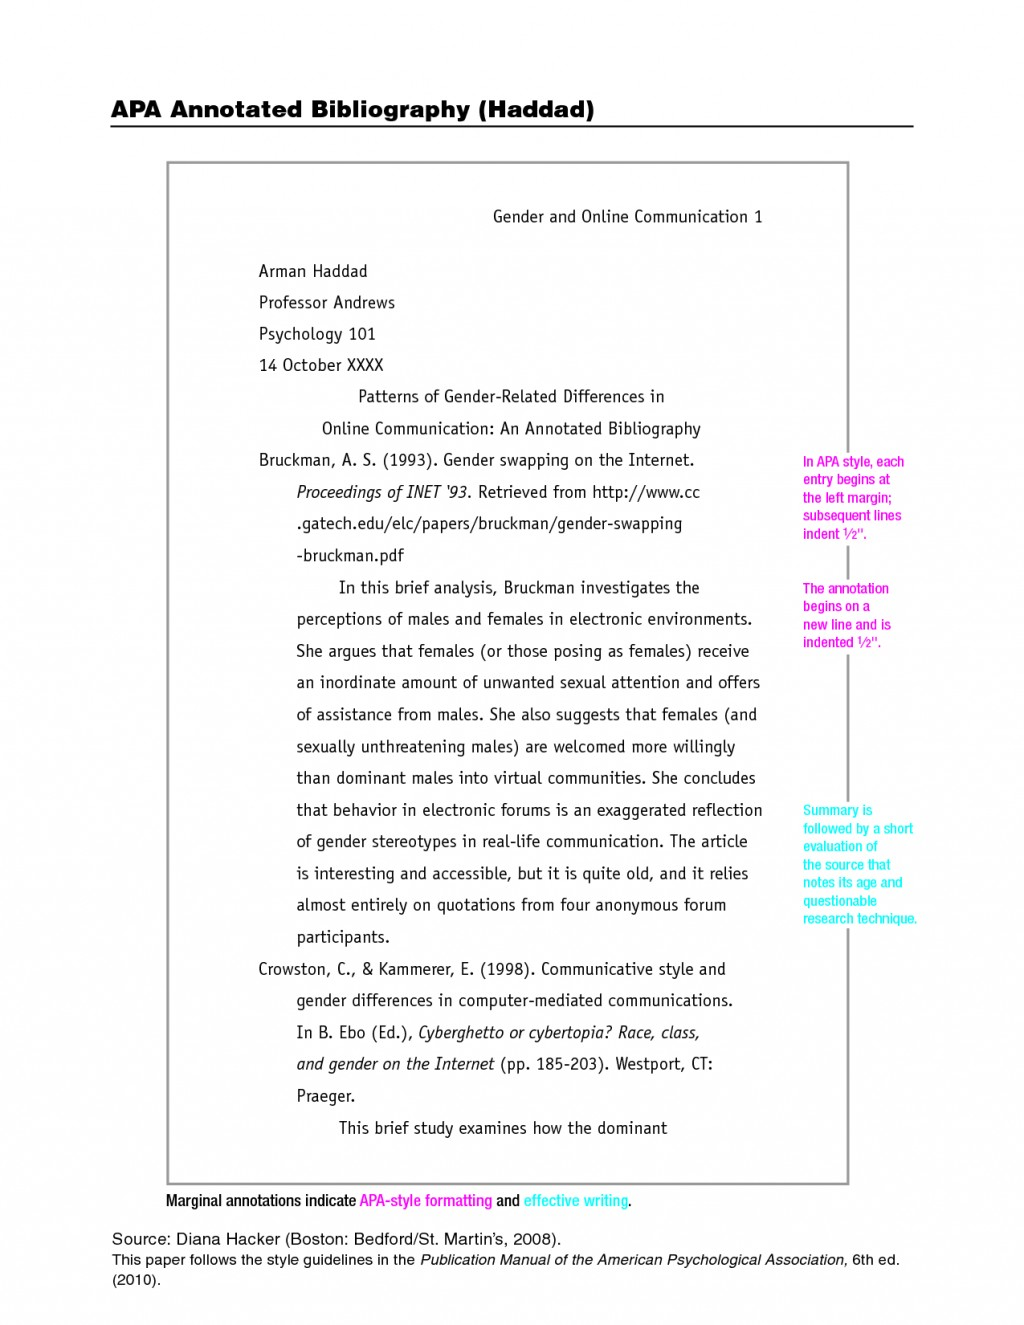 015 Research Paper How To Write Good Fast 1198784868 Unusual A Do You 3 Page On Food Large